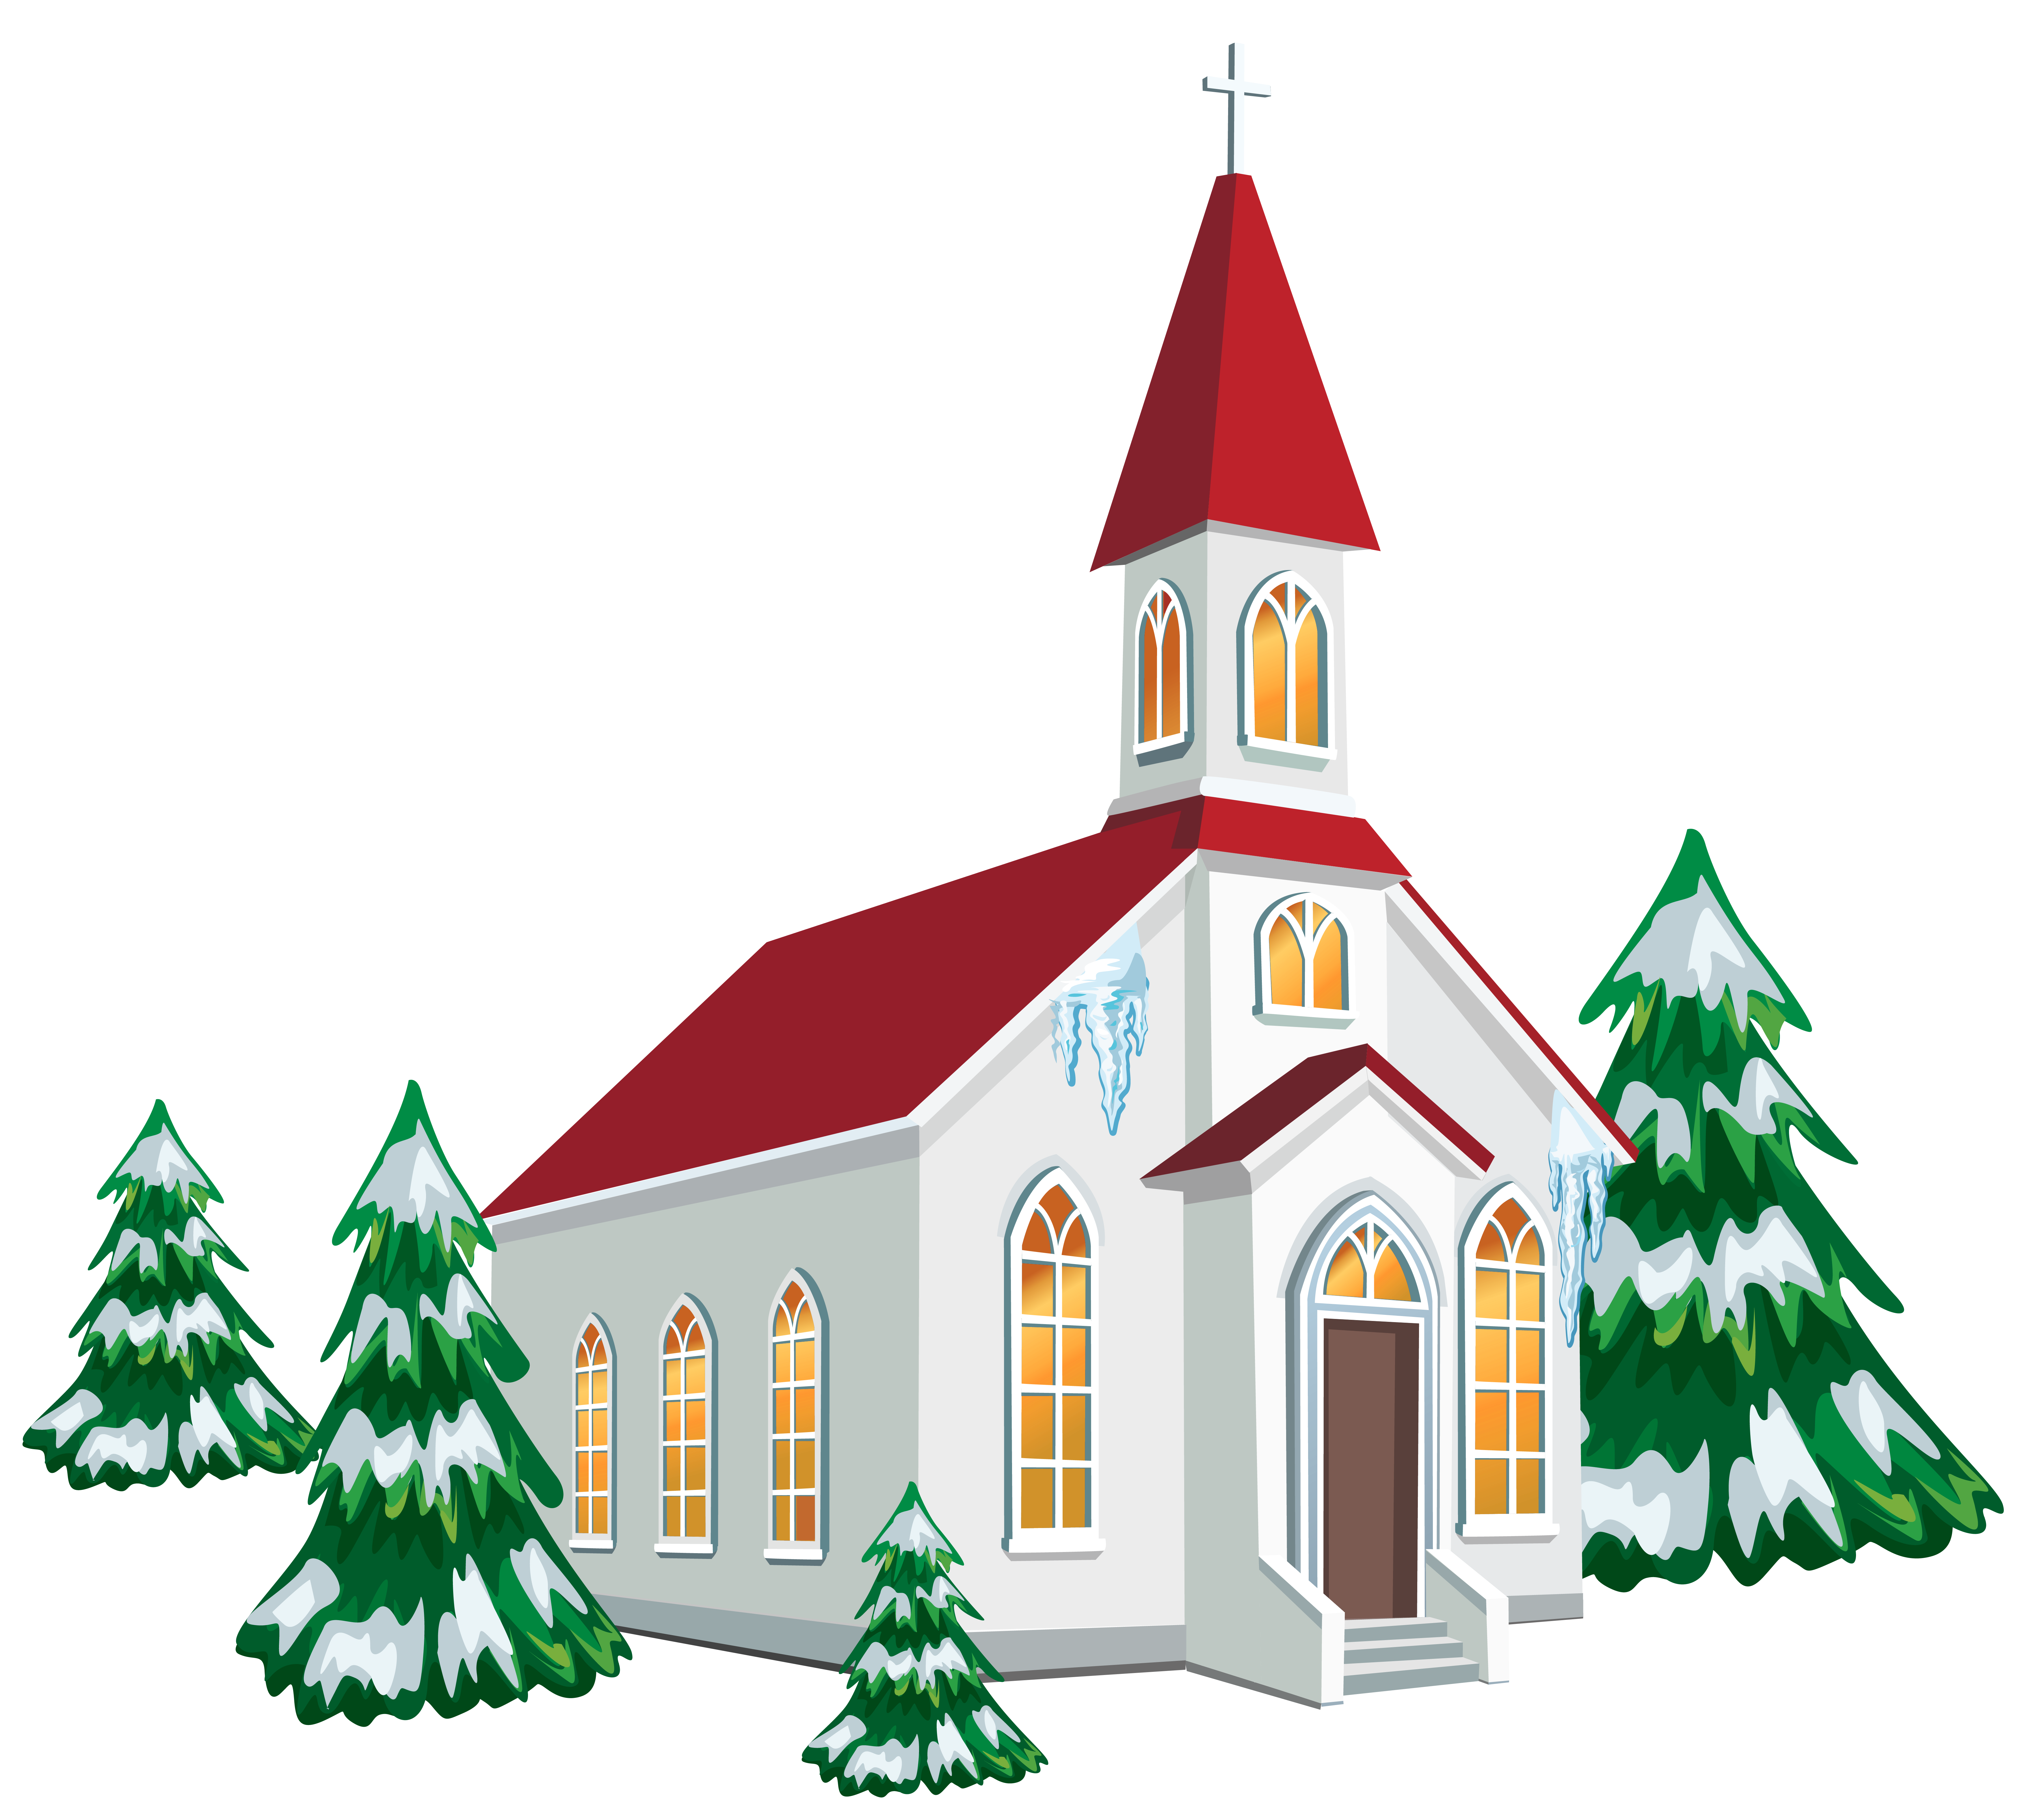 Winter scenery clipart png graphic free library Winter Church with Snow Trees PNG Clipart Image | Gallery ... graphic free library